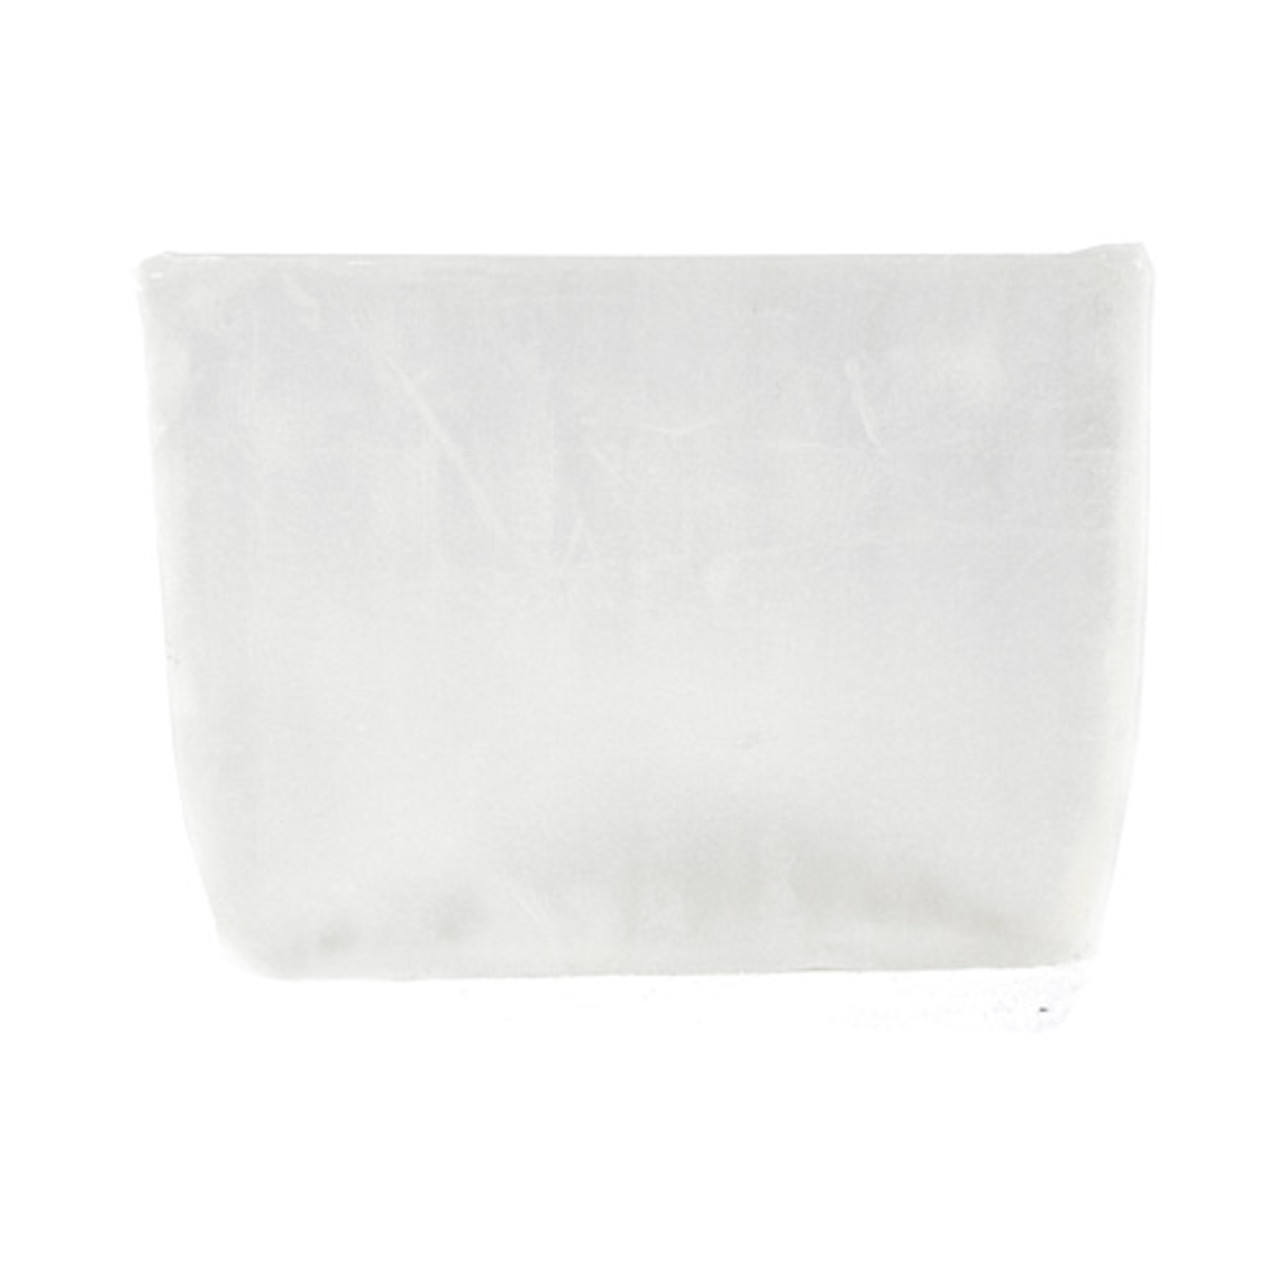 Mosquito Fighting vegetable glycerin soap